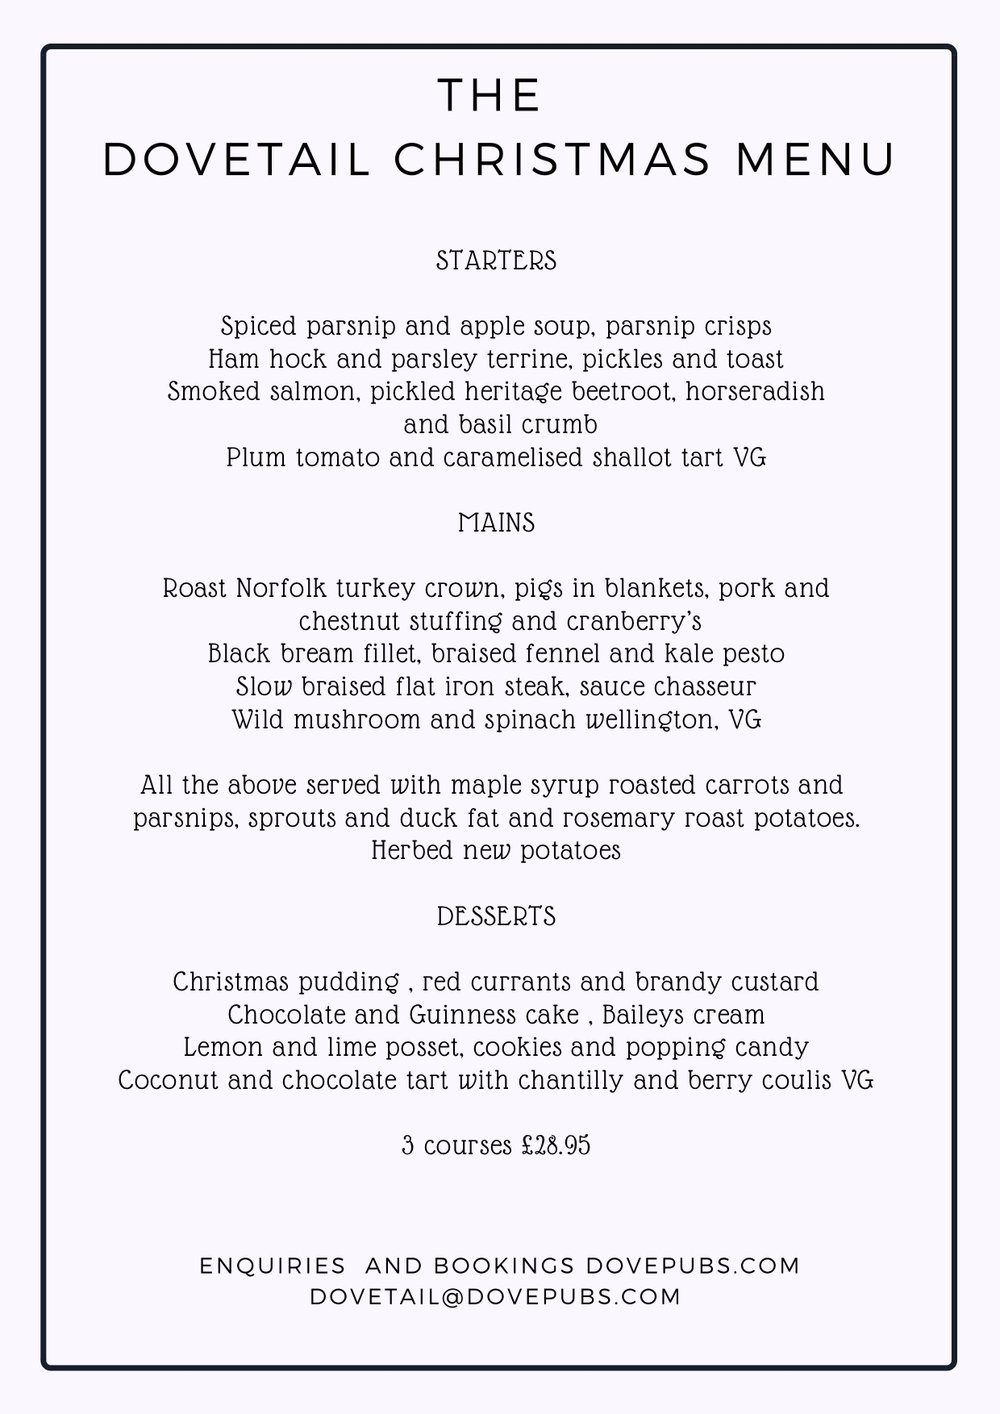 X Dovetail Christmas Menu.jpg